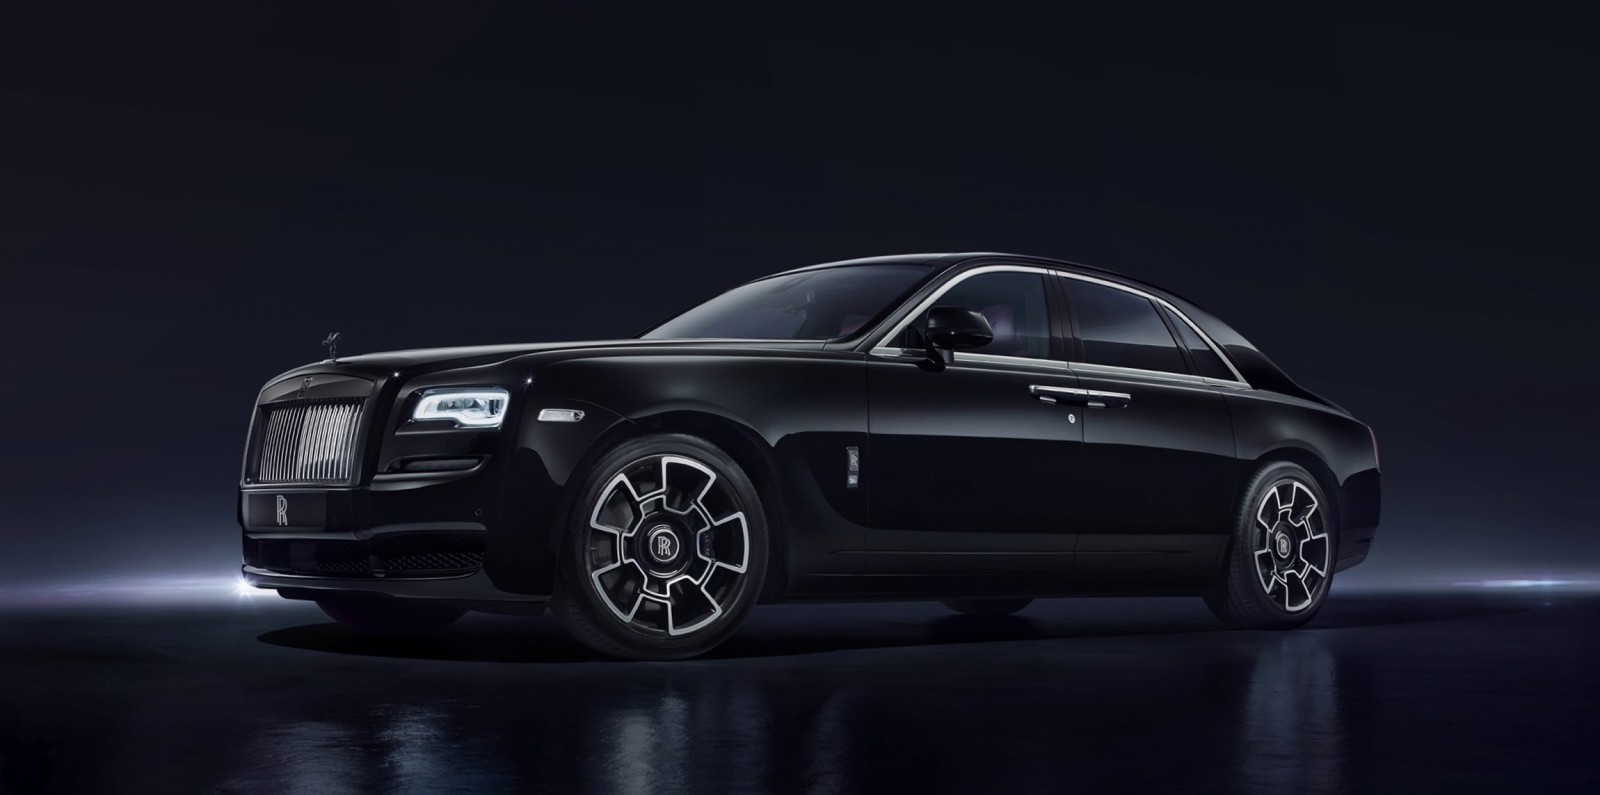 Rose Royce Car Images >> 2017 Rolls-Royce BLACK BADGE Ghost and Wraith - Best of Geneva 2016